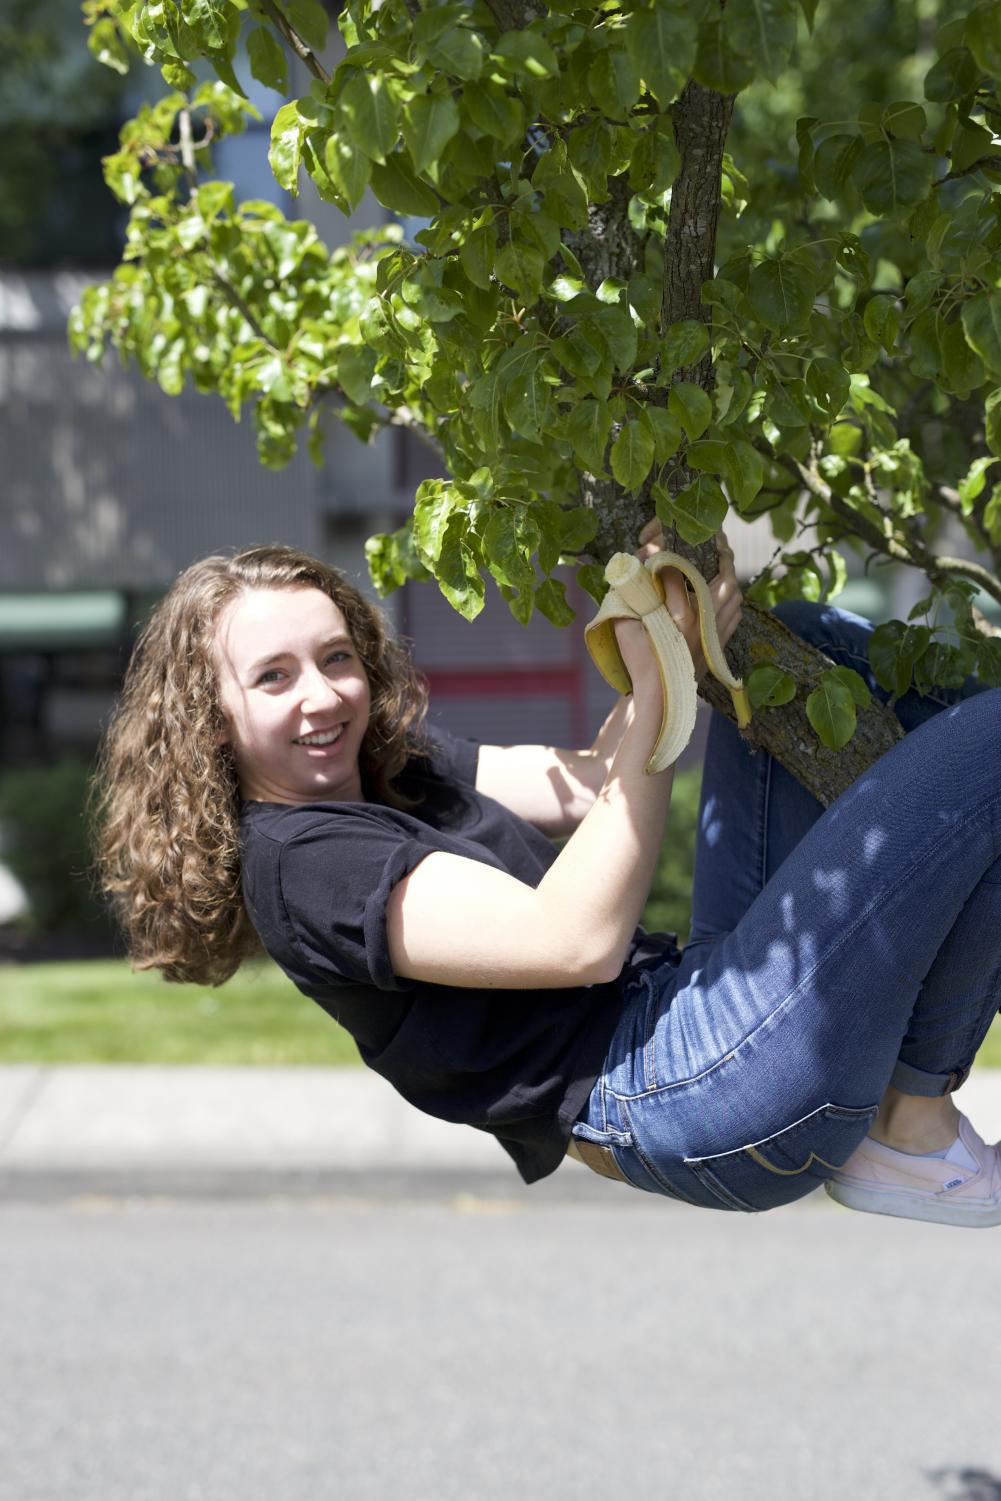 Morgan Crosby hangs from a tree with her beloved banana.